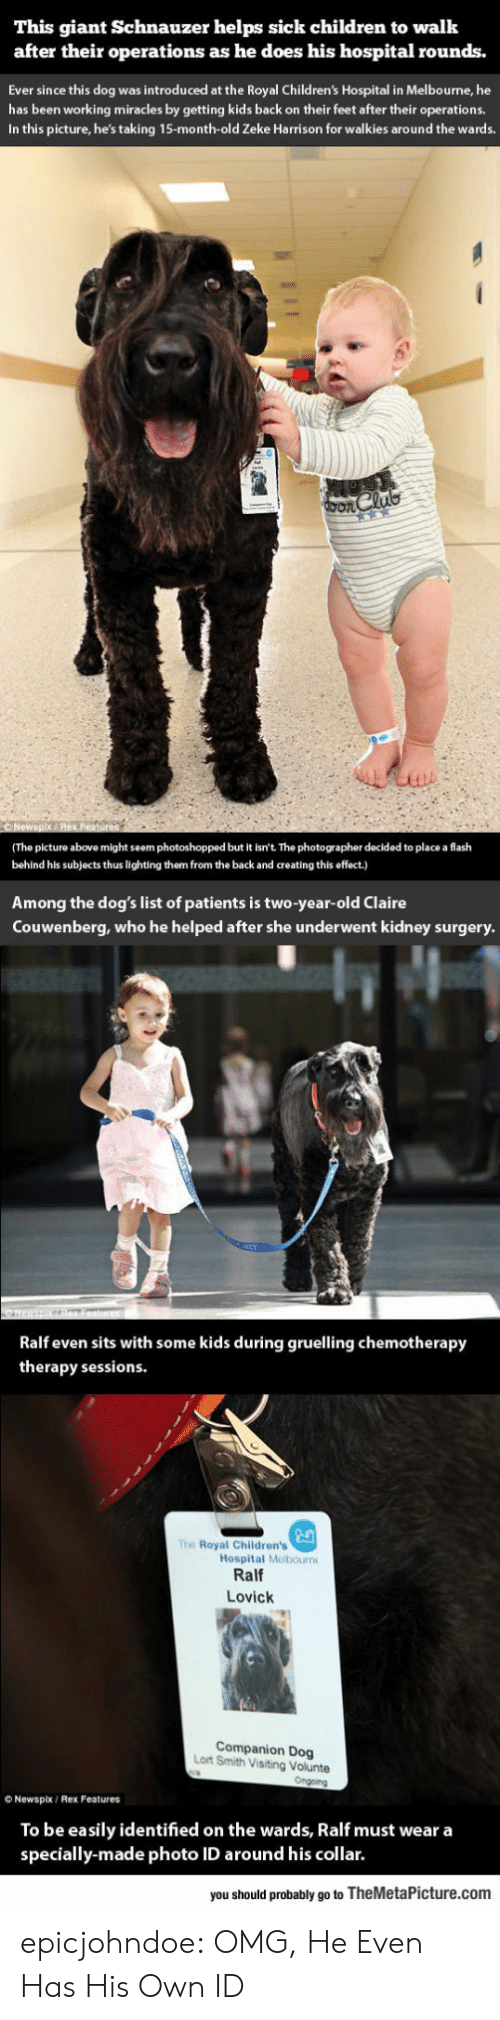 Children, Dogs, and Omg: This giant Schnauzer helps sick children to walk  after their operations as he does his hospital rounds.  Ever since this dog was introduced at the Royal Children's Hospital in Melbourne, he  has been working miracles by getting kids back on their feet after their operations.  In this picture, he's taking 15-month-old Zeke Harrison for walkies around the wards.  (The picture above might seem photoshopped but it isn't. The photographer decided to place a flash  behind his subjects thus lighting them from the back and creating this effect.)  Among the dog's list of patients is two-year-old Claire  Couwenberg, who he helped after she underwent kidney surgery  Ralf even sits with some kids during gruelling chemotherapy  therapy sessions  The Royal Children's  Hospital Melbourn  Ralf  Lovick  Companion Dog  Lort Smith Visiting Volunte  O Newspix/ Rex Features  To be easily identified on the wards, Ralf must wear a  specially-made photo ID around his collar.  you should probably go to TheMetaPicture.com epicjohndoe:  OMG, He Even Has His Own ID